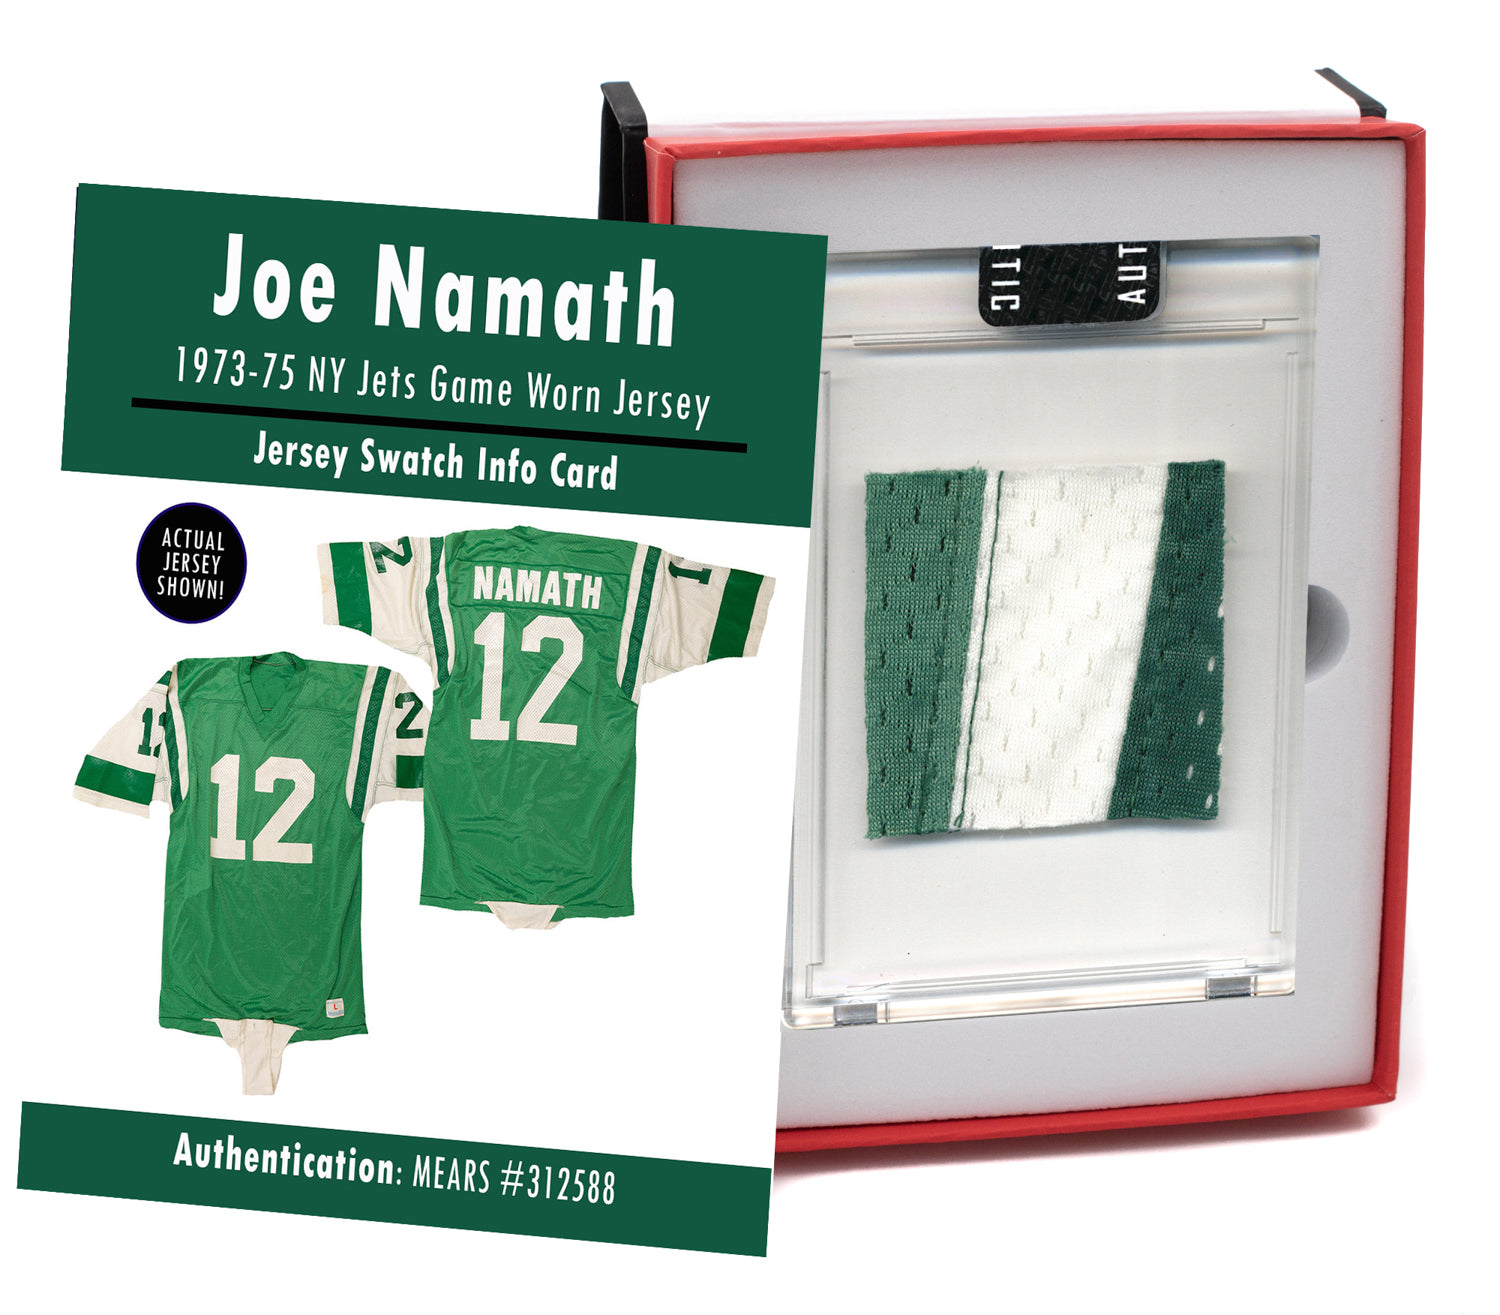 Joe Namath 1973-75 New York Jets Game Worn Jersey Mystery Swatch Box